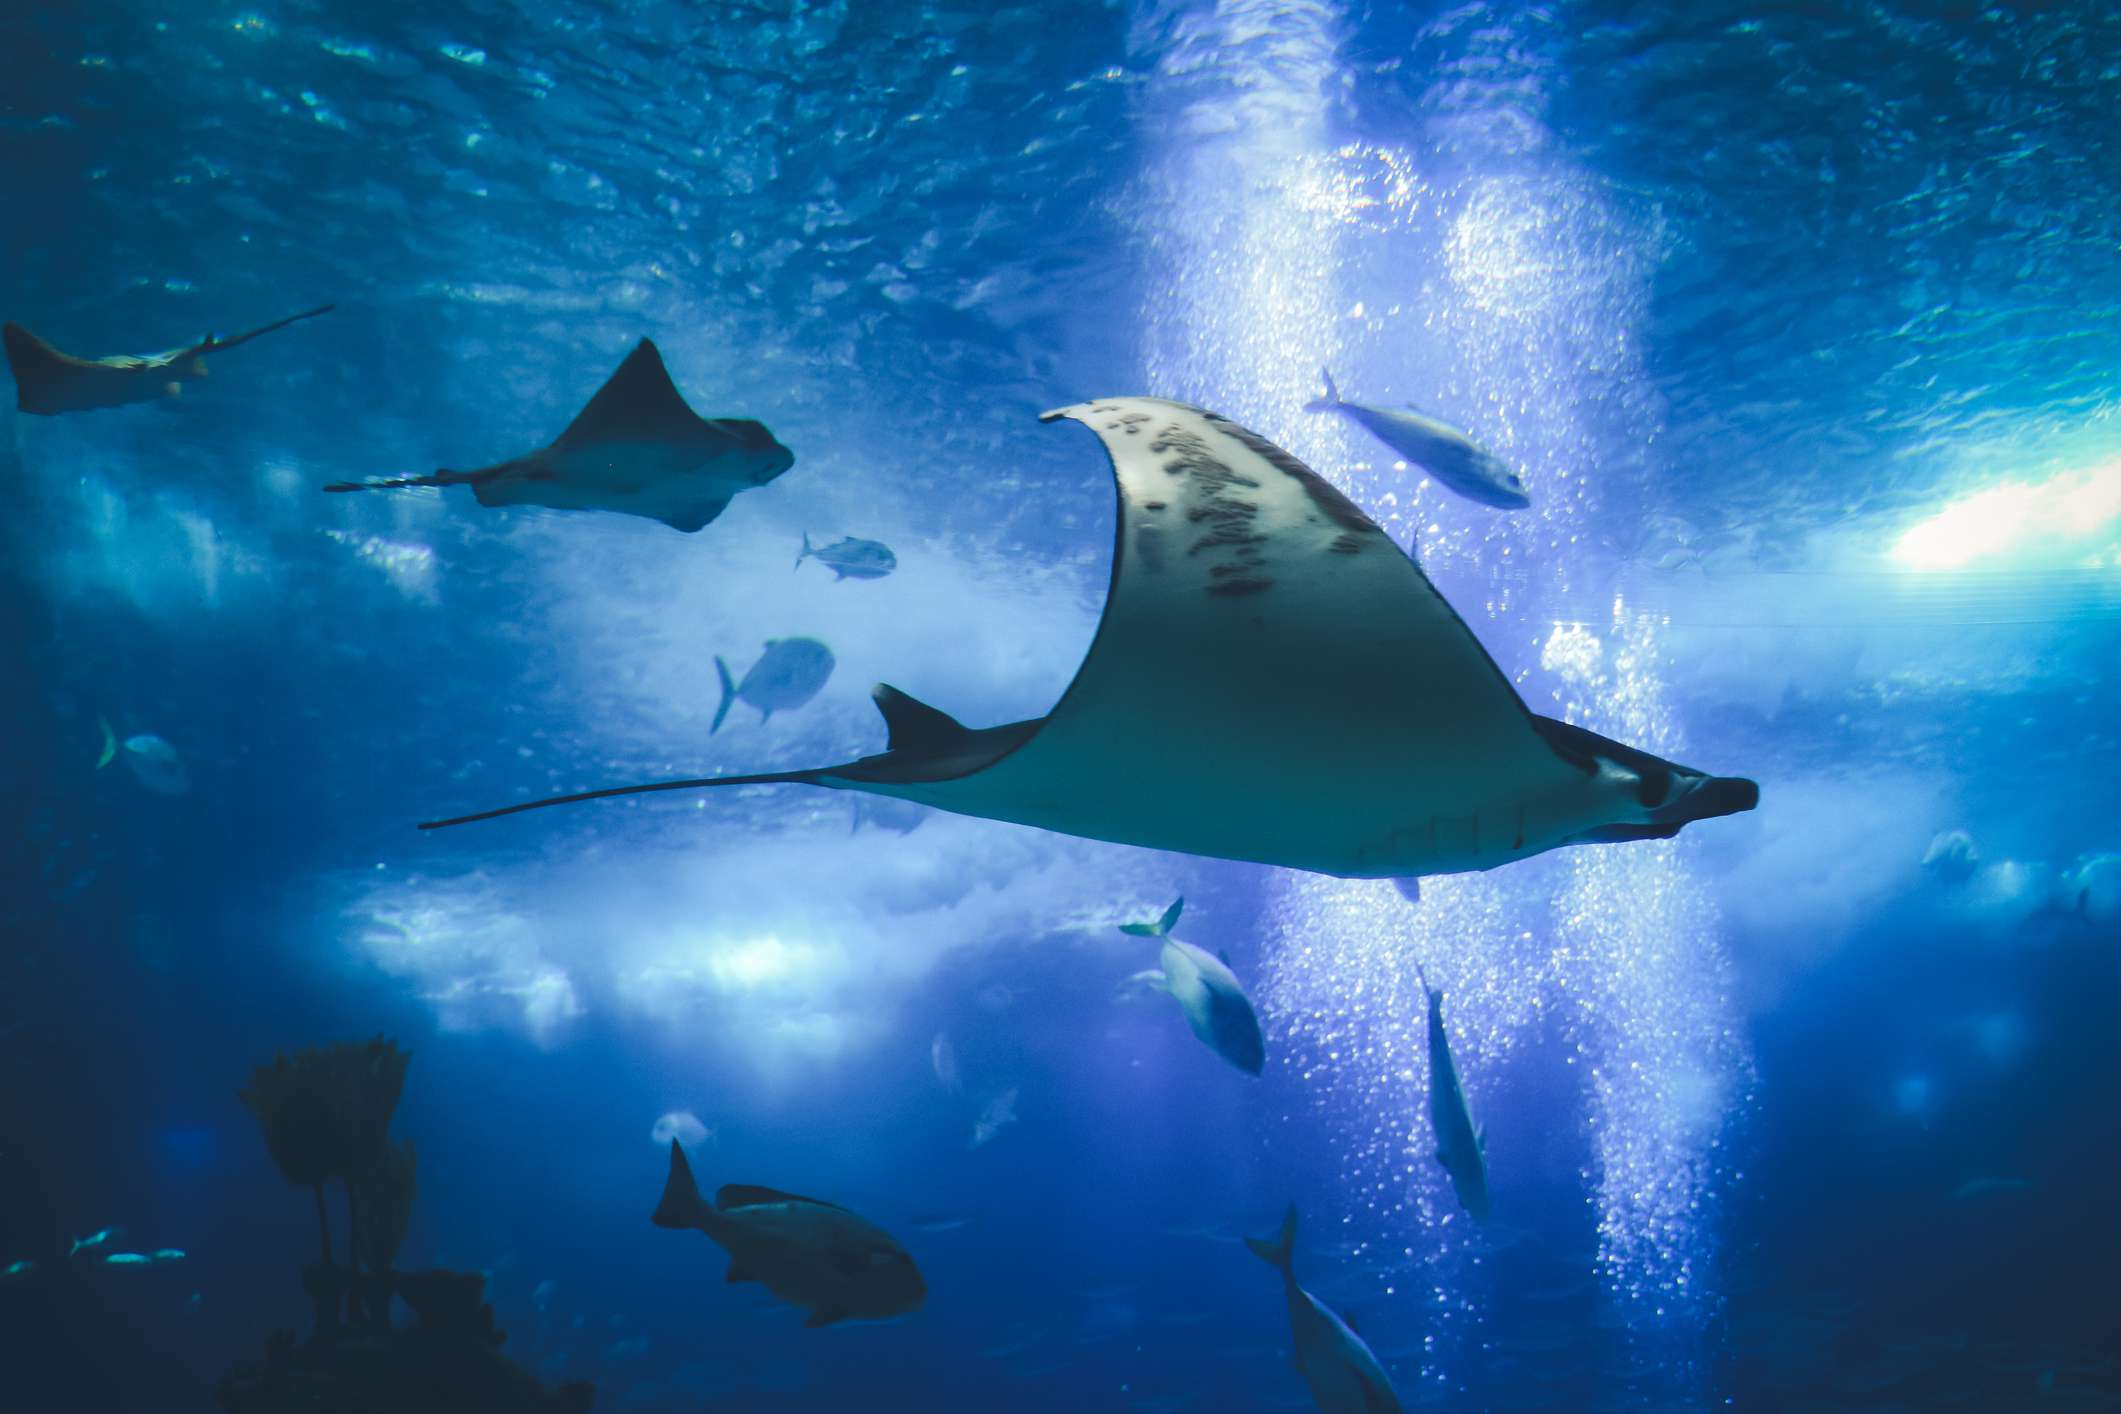 Stingrays and fish swimming in the blue water of the Lisbon Oceanarium